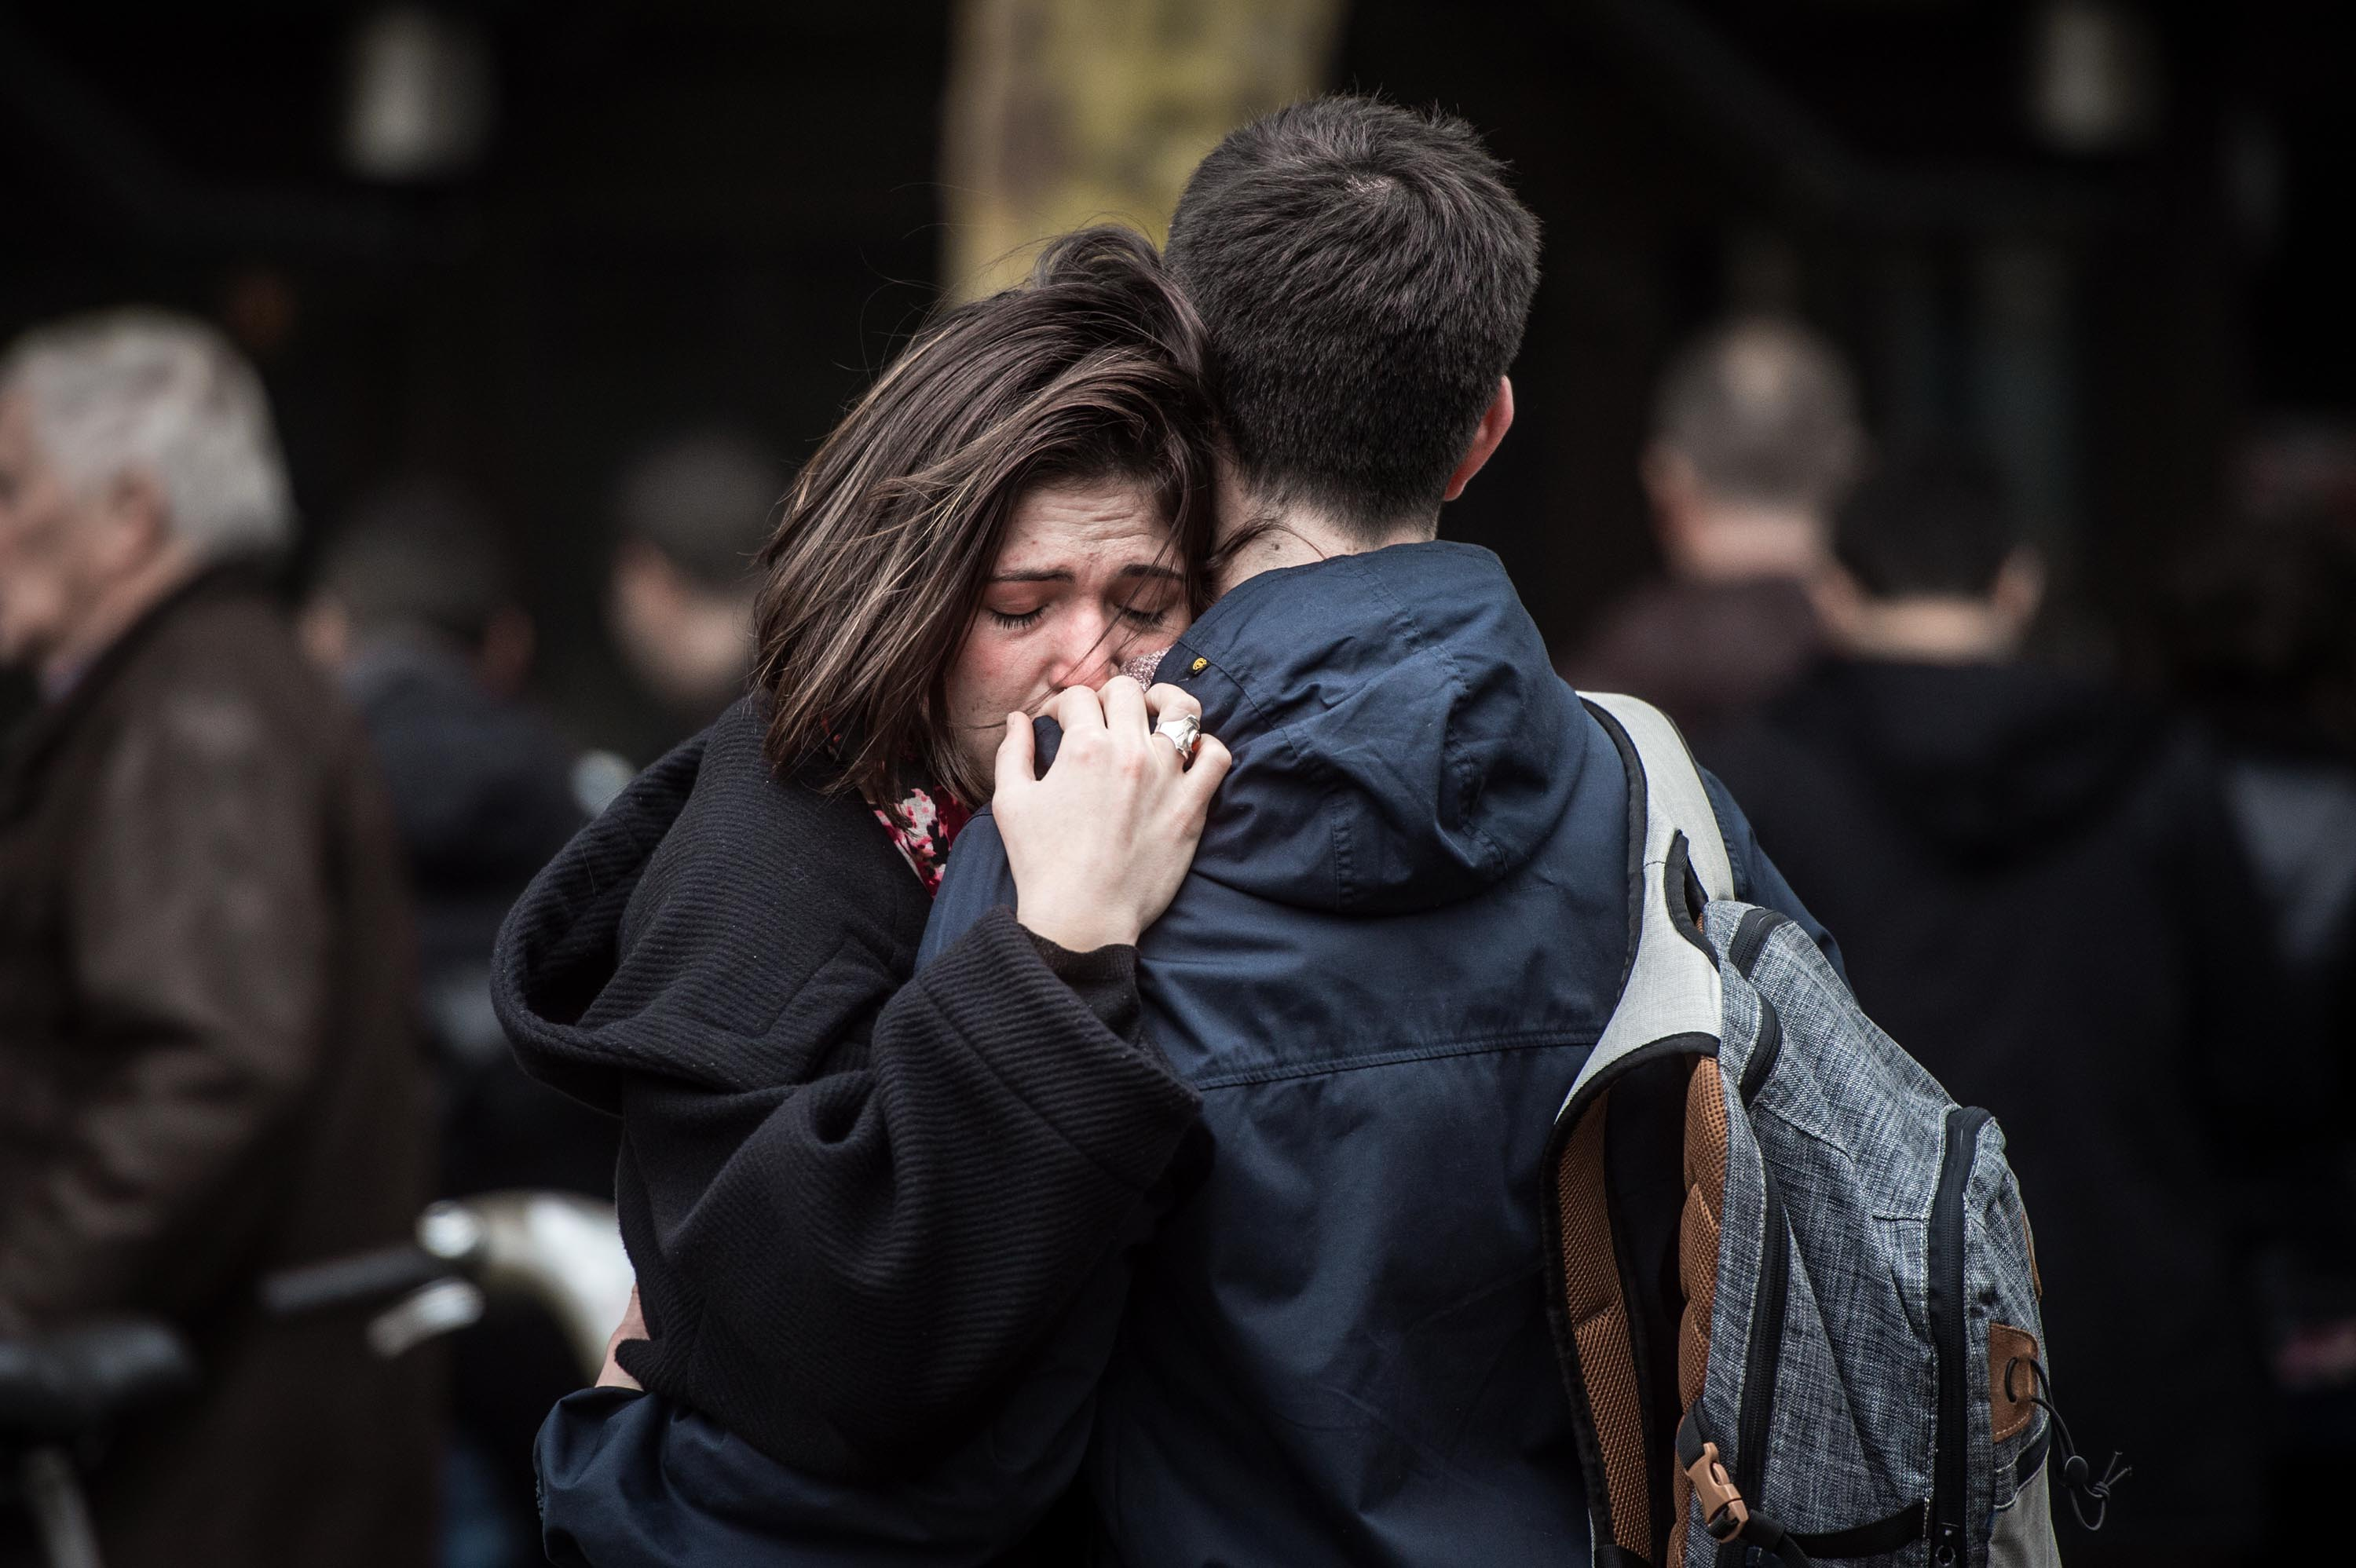 A couple embrace near the Cosa Nostra restaurant in Paris on Nov. 14, 2015.